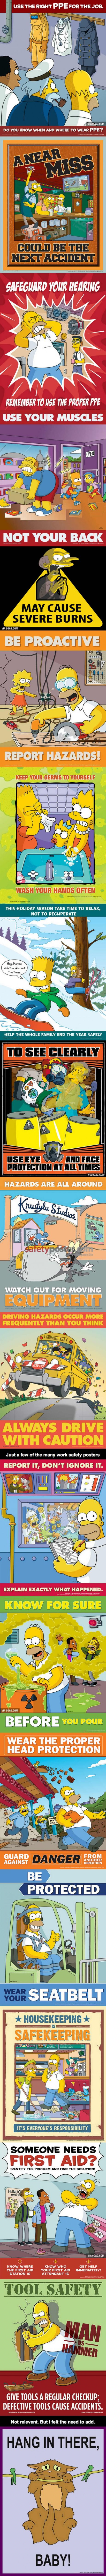 35 Simpson's Safety Posters (Part 2)